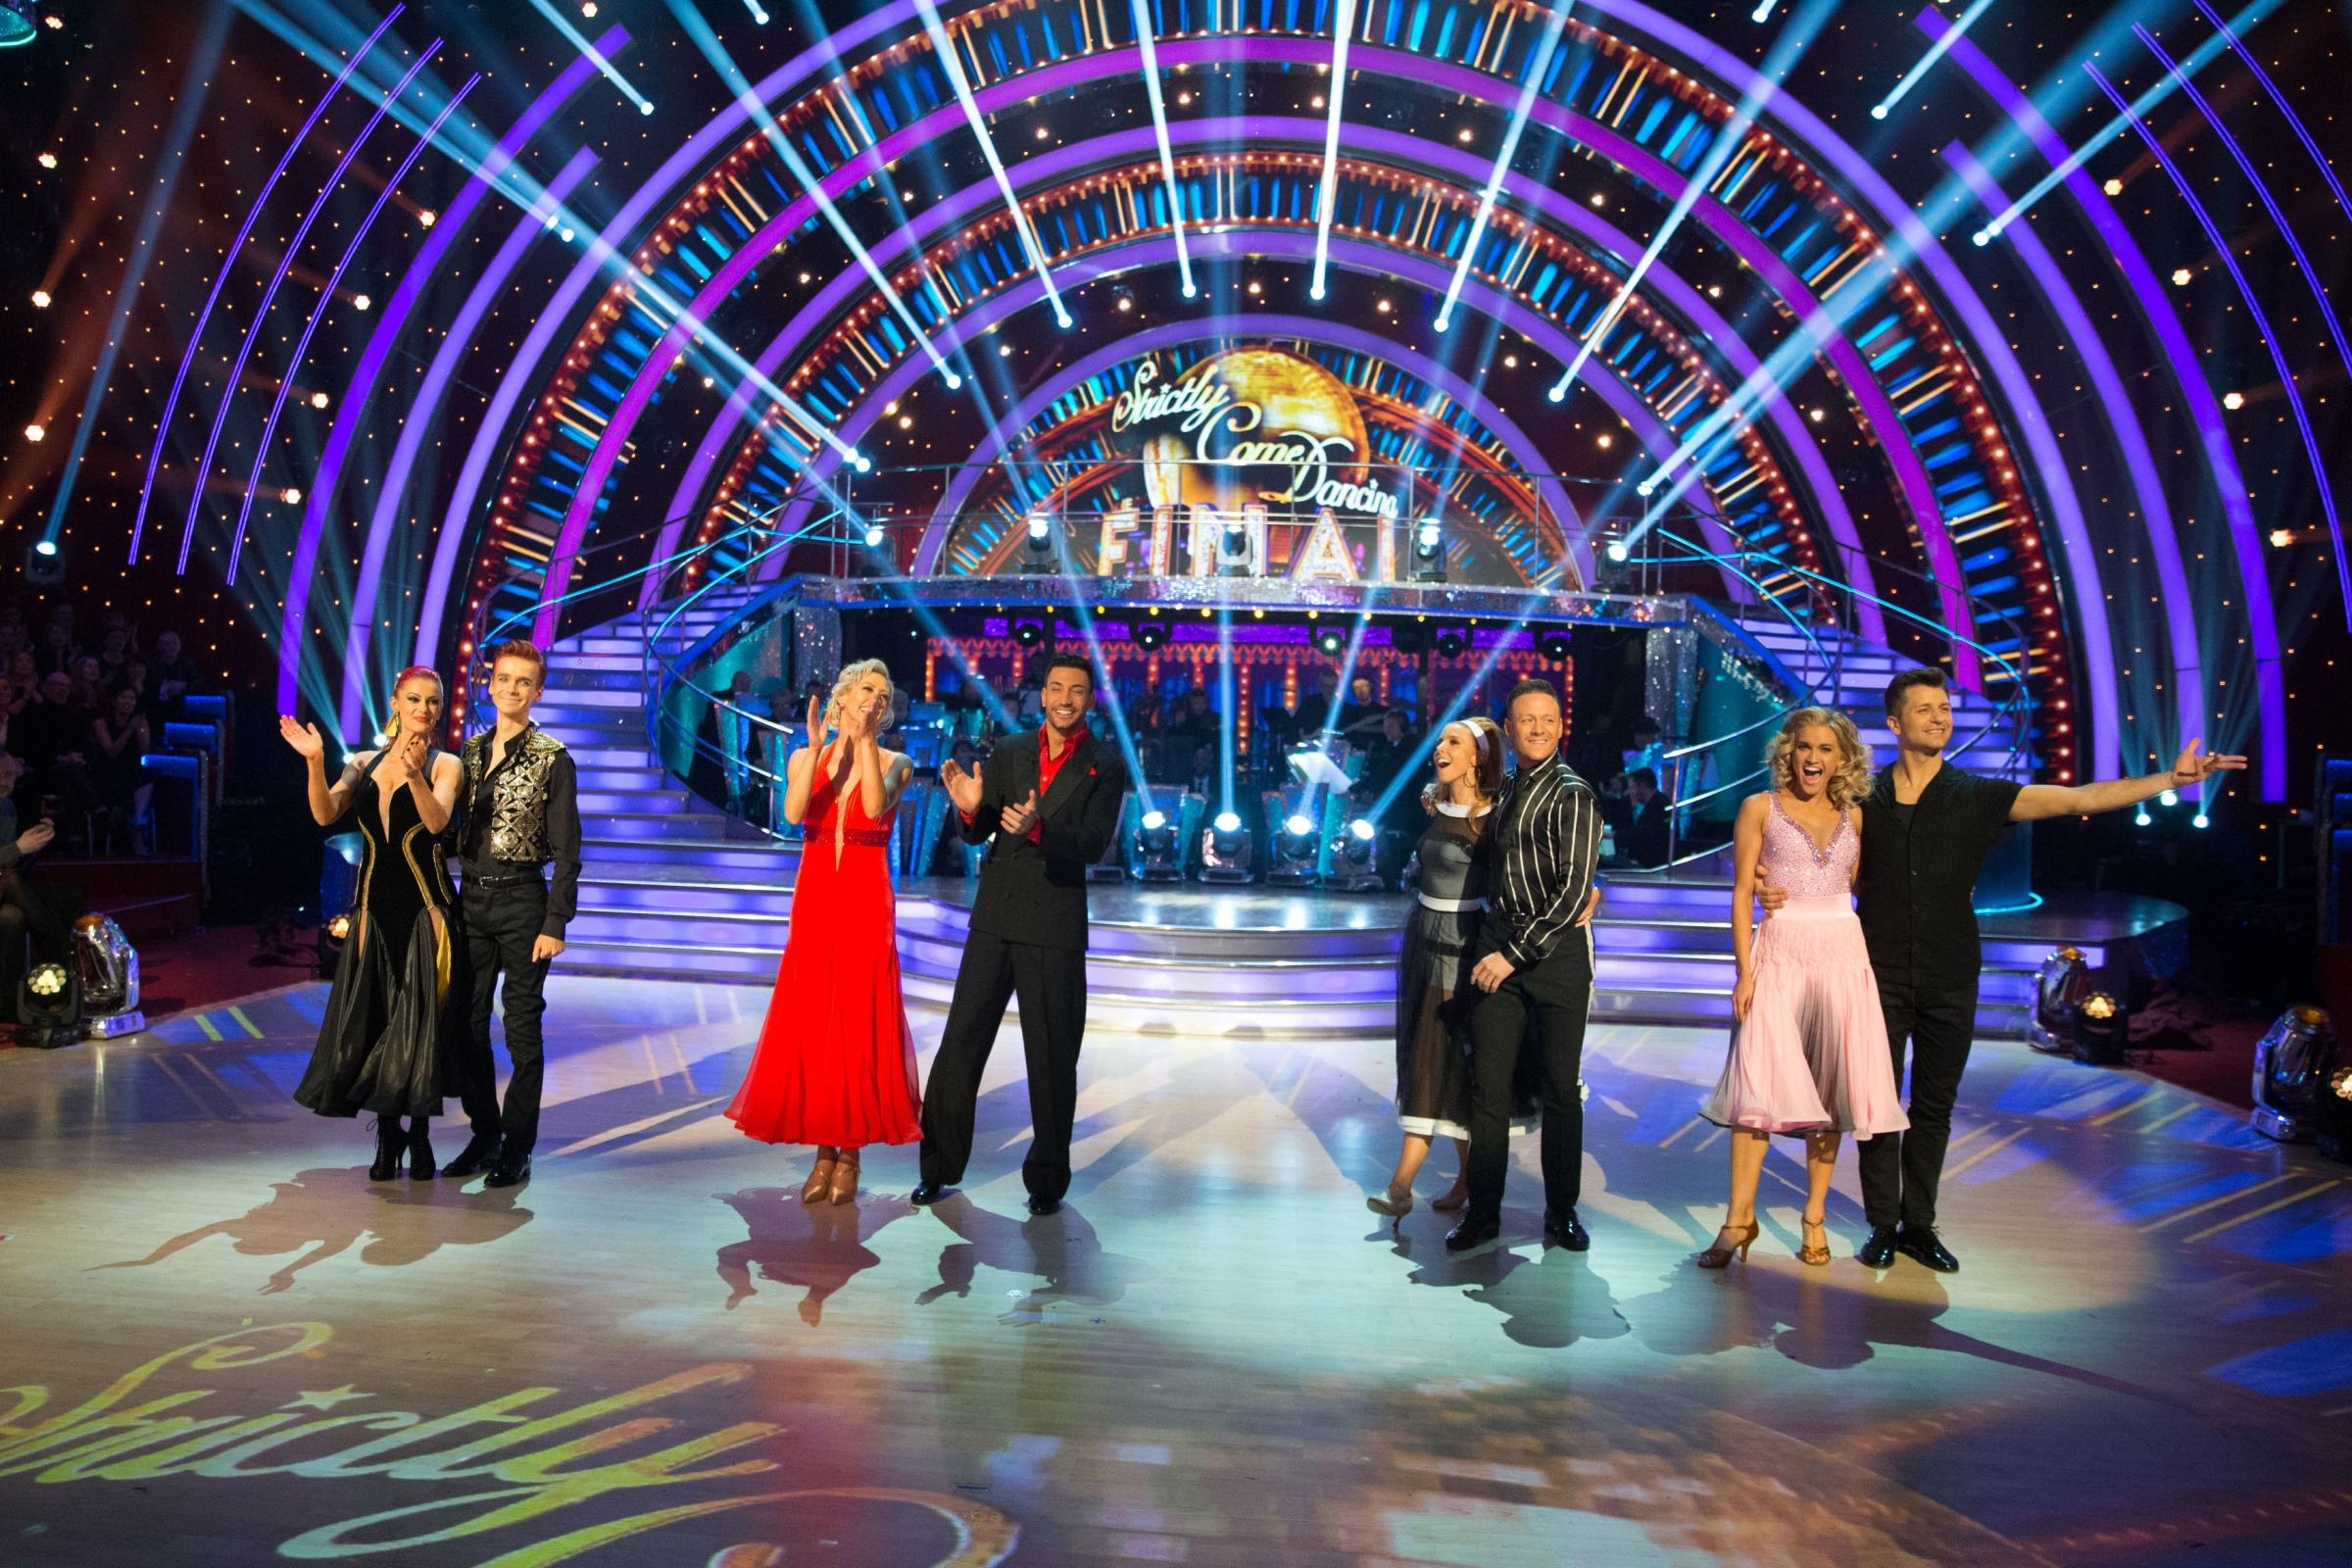 Strictly finalists (left to right) Dianne Buswell, Joe Sugg, Faye Tozer, Giovanni Pernice, Stacey Dooley, Kevin Clifton, Ashley Roberts and Pasha Kovalev taking part in the Strictly Come Dancing live final on BBC One.  Picture: PA